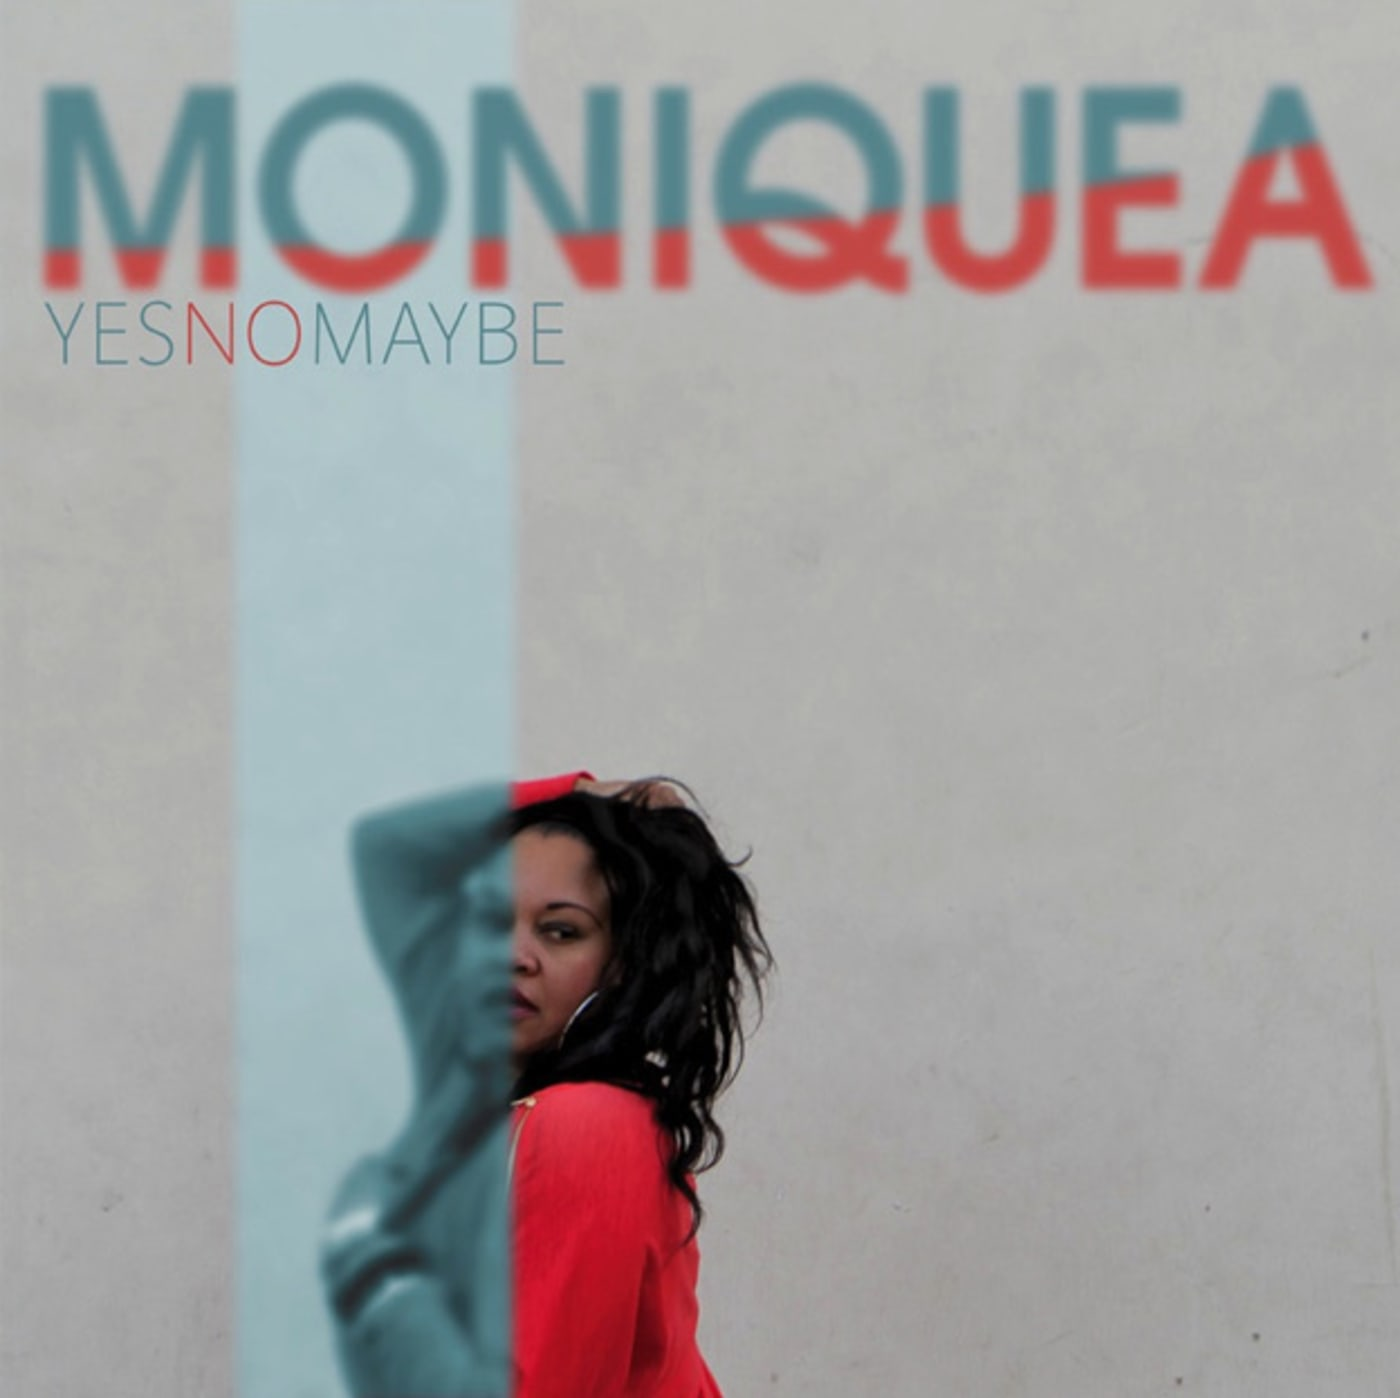 moniquea yes no maybe